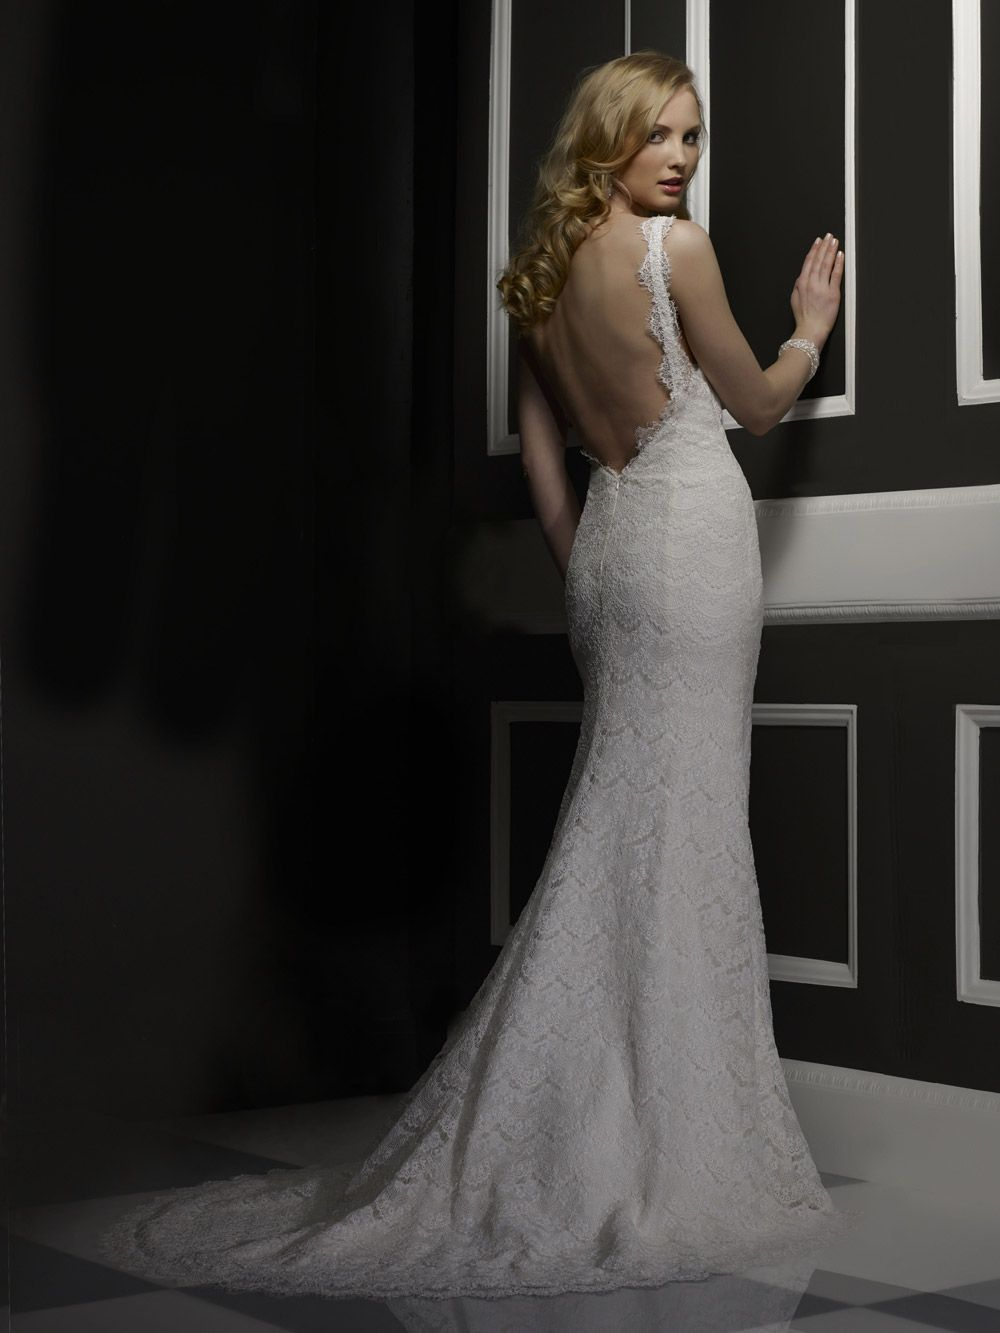 The Robert Bullock Bride Collection Of Timeless Affordable Wedding Dresses Is Available In Colorado Only At Little White Dress Bridal